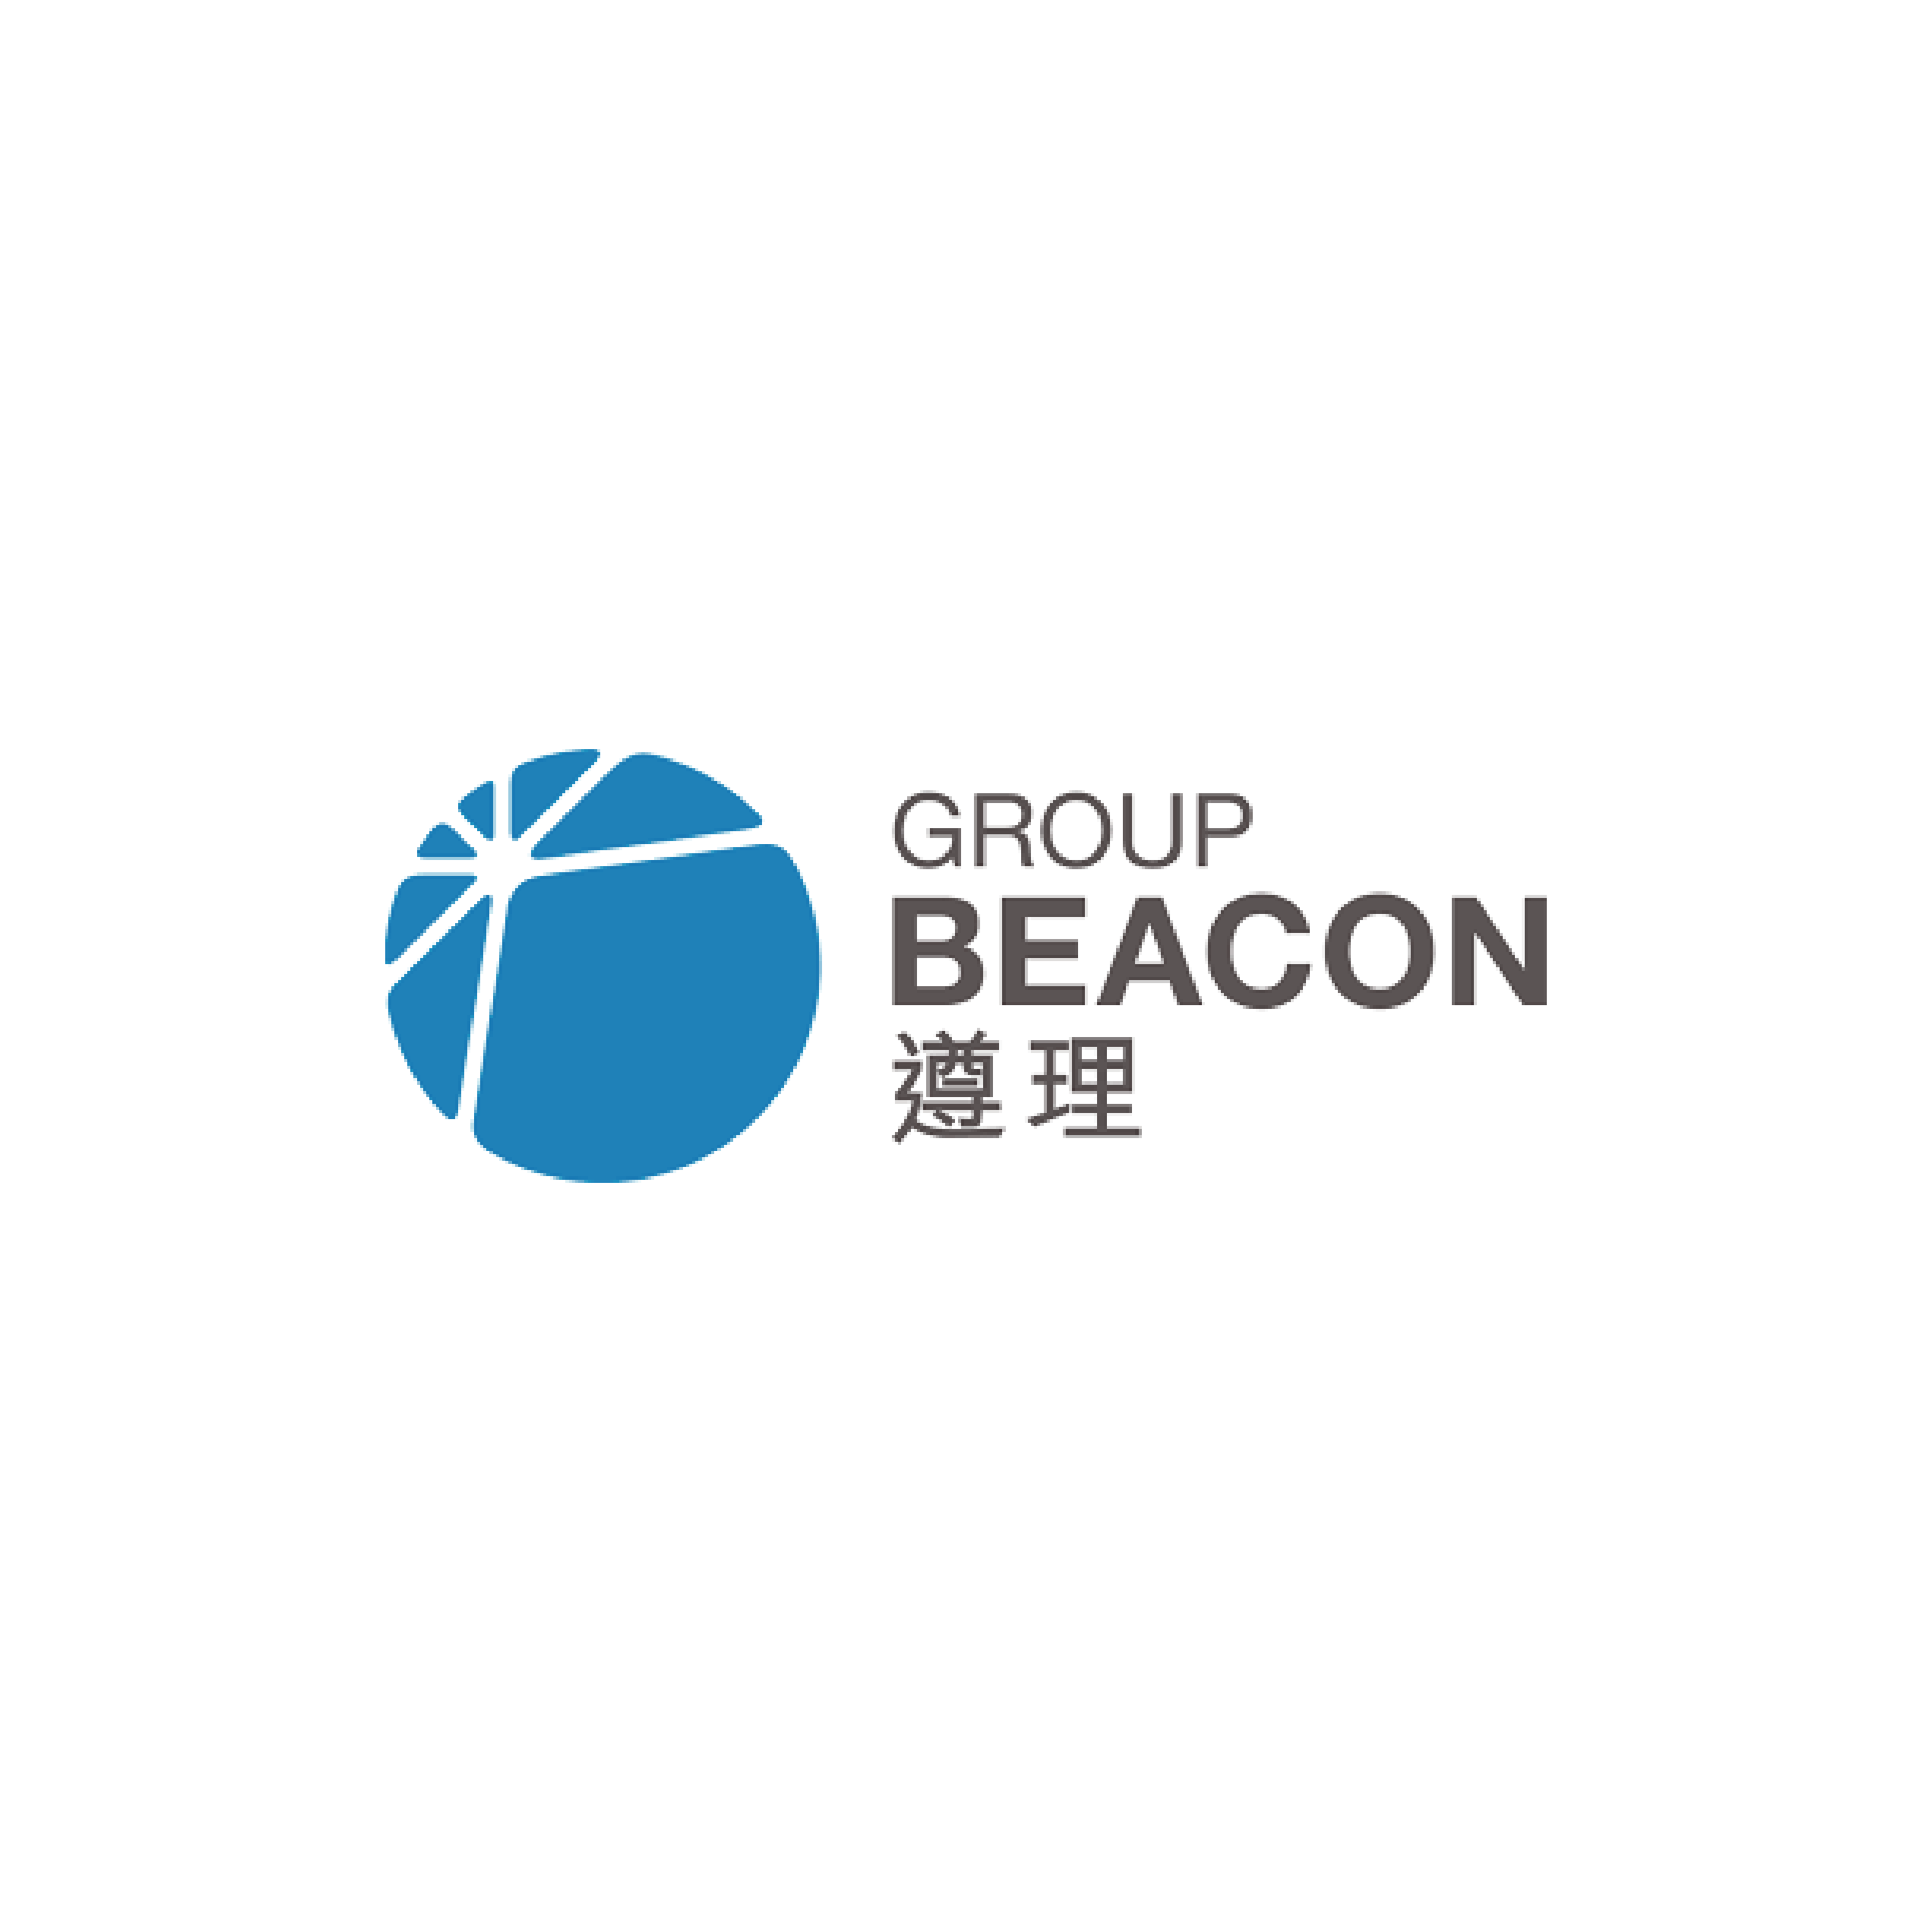 GROUP BEACON